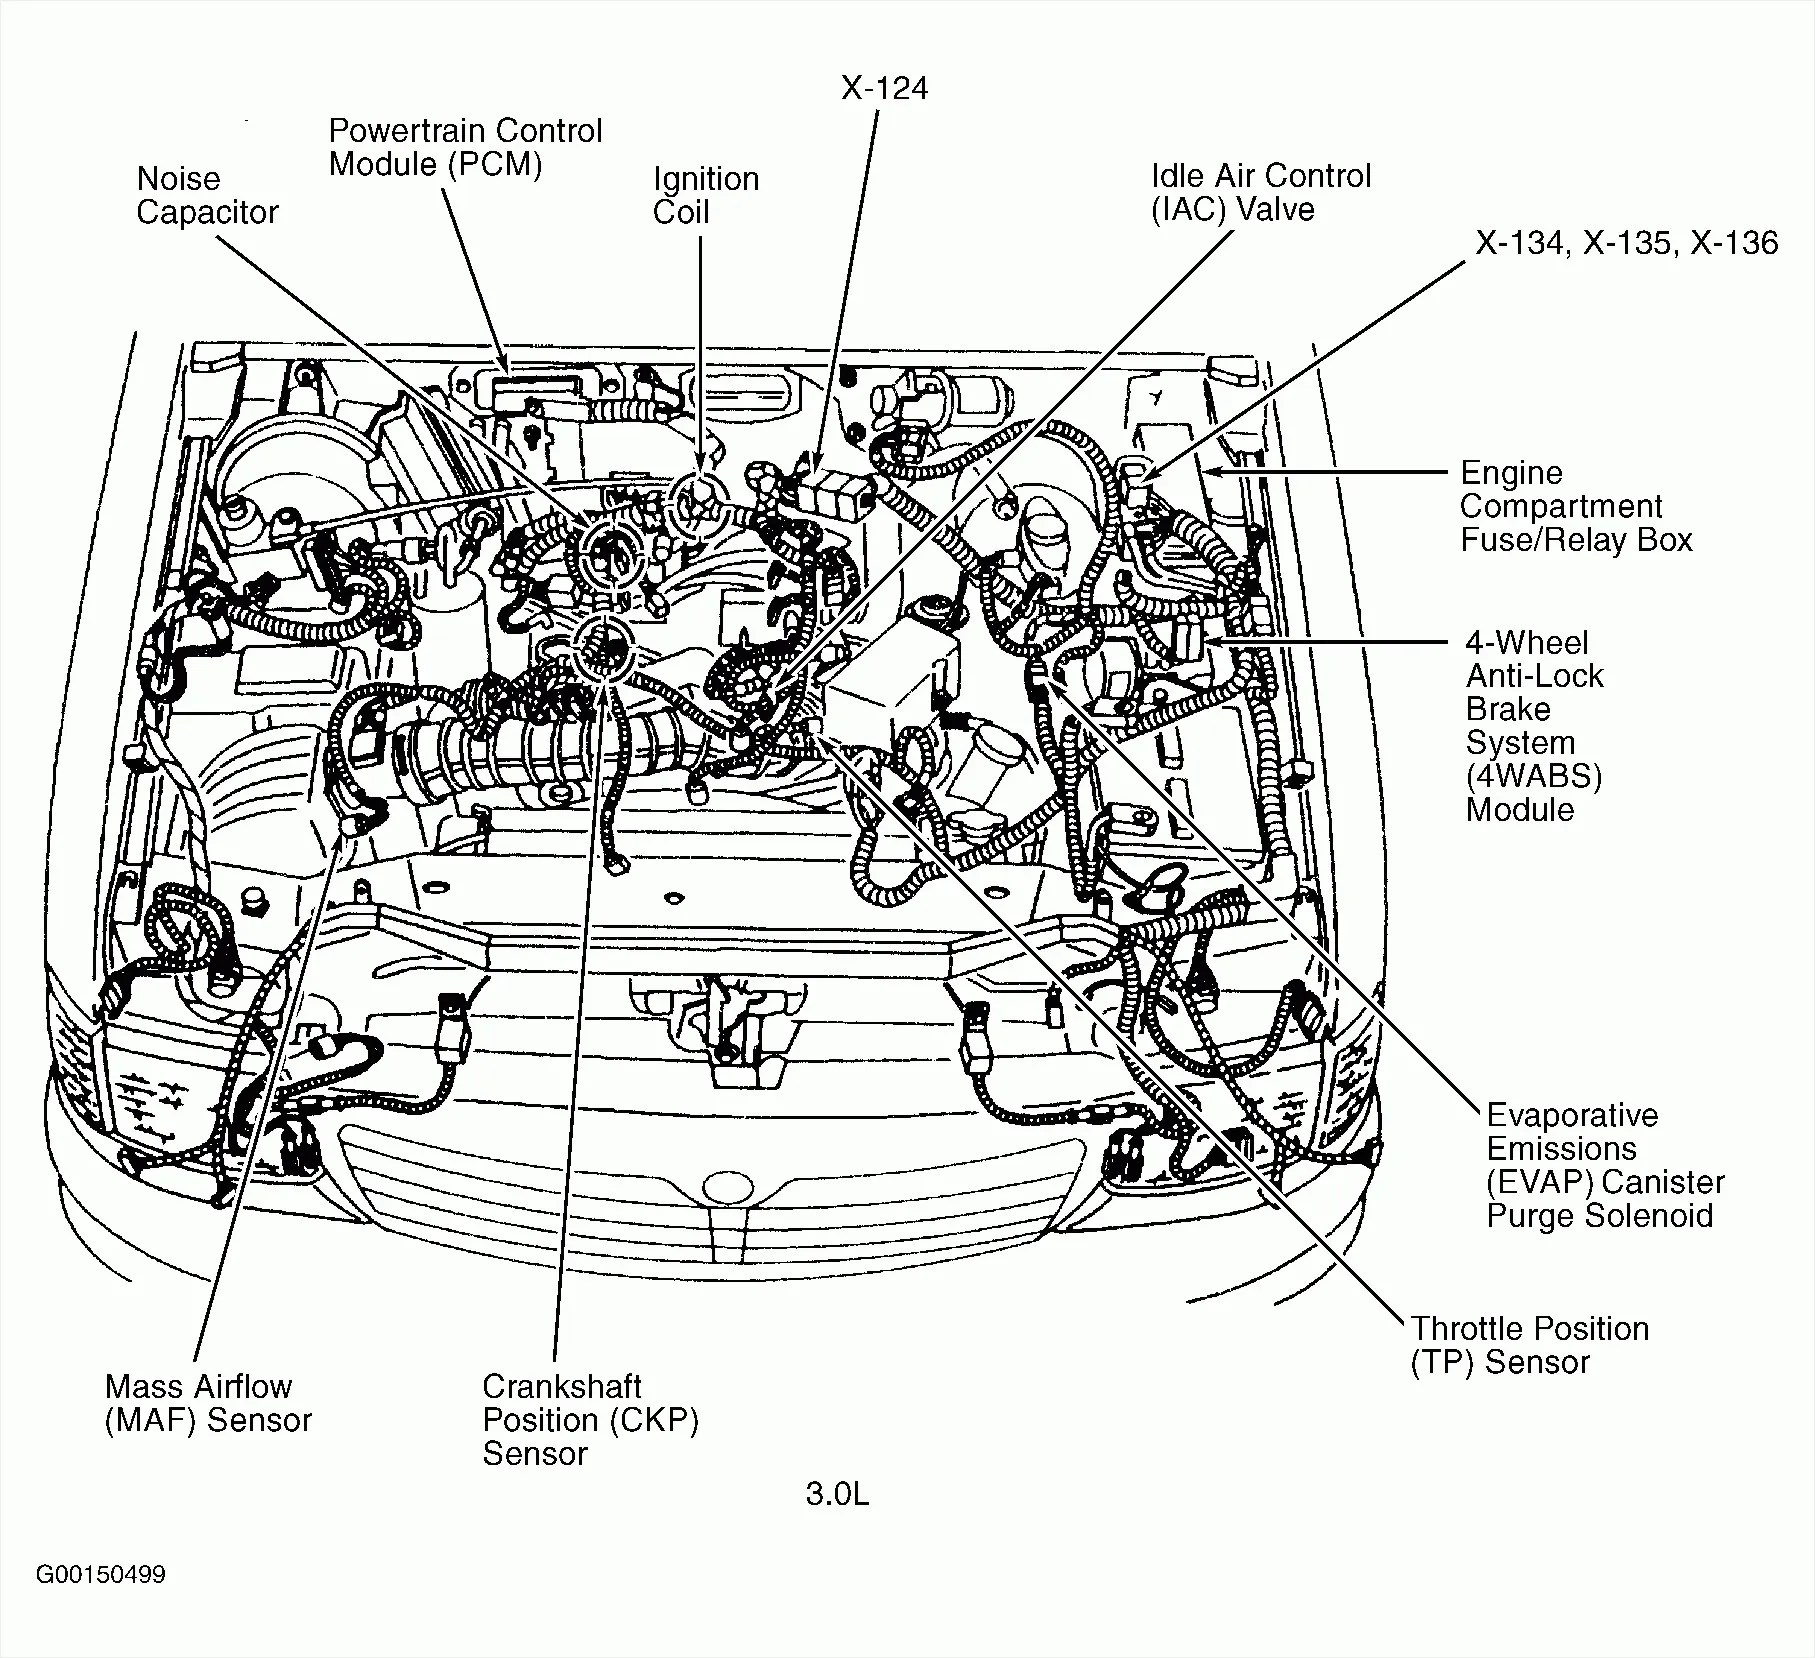 chrysler pacifica 4 0 engine diagram wiring diagram operations chrysler engine diagram wiring diagram details chrysler [ 1815 x 1658 Pixel ]